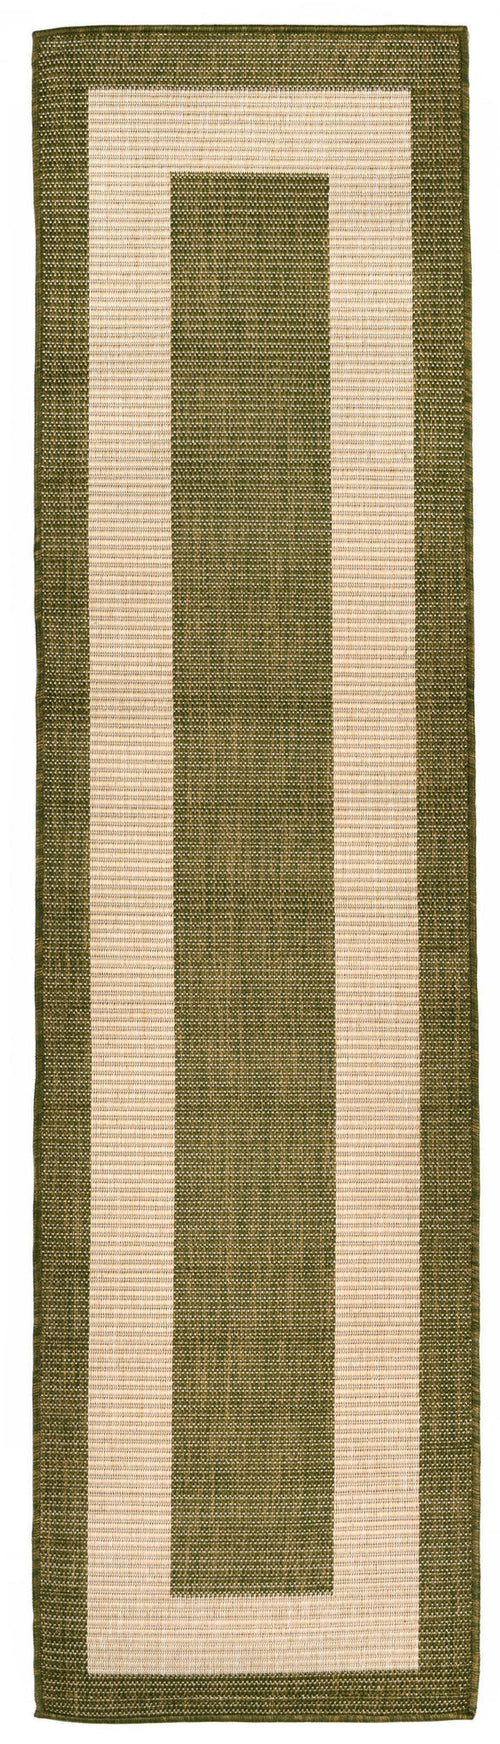 Terrace Border Green Indoor/Outdoor Rug